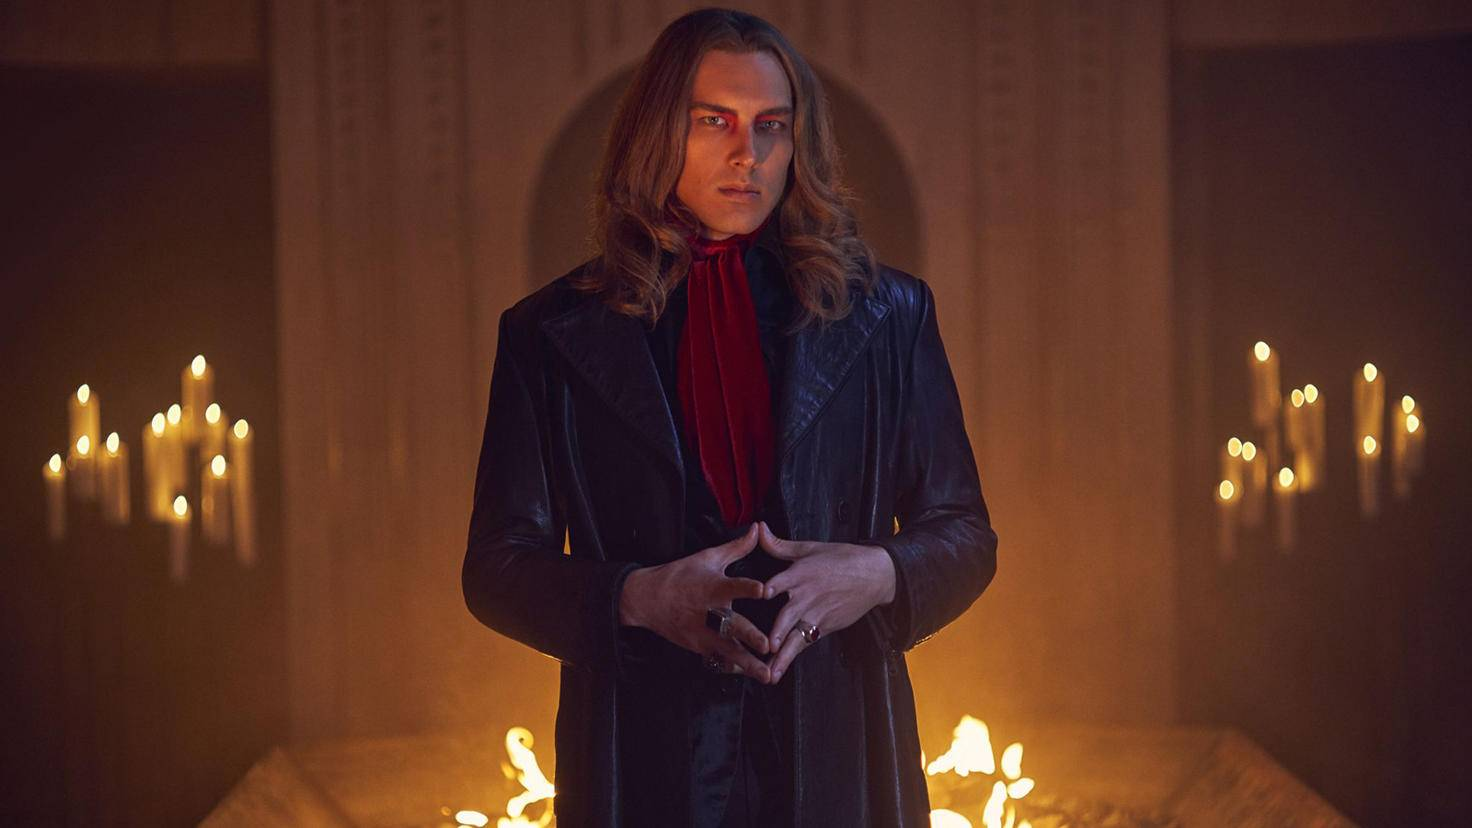 American Horror Story Apocalypse-Cody fern-Michael Langdon-Fox and its related entities-All rights reserved